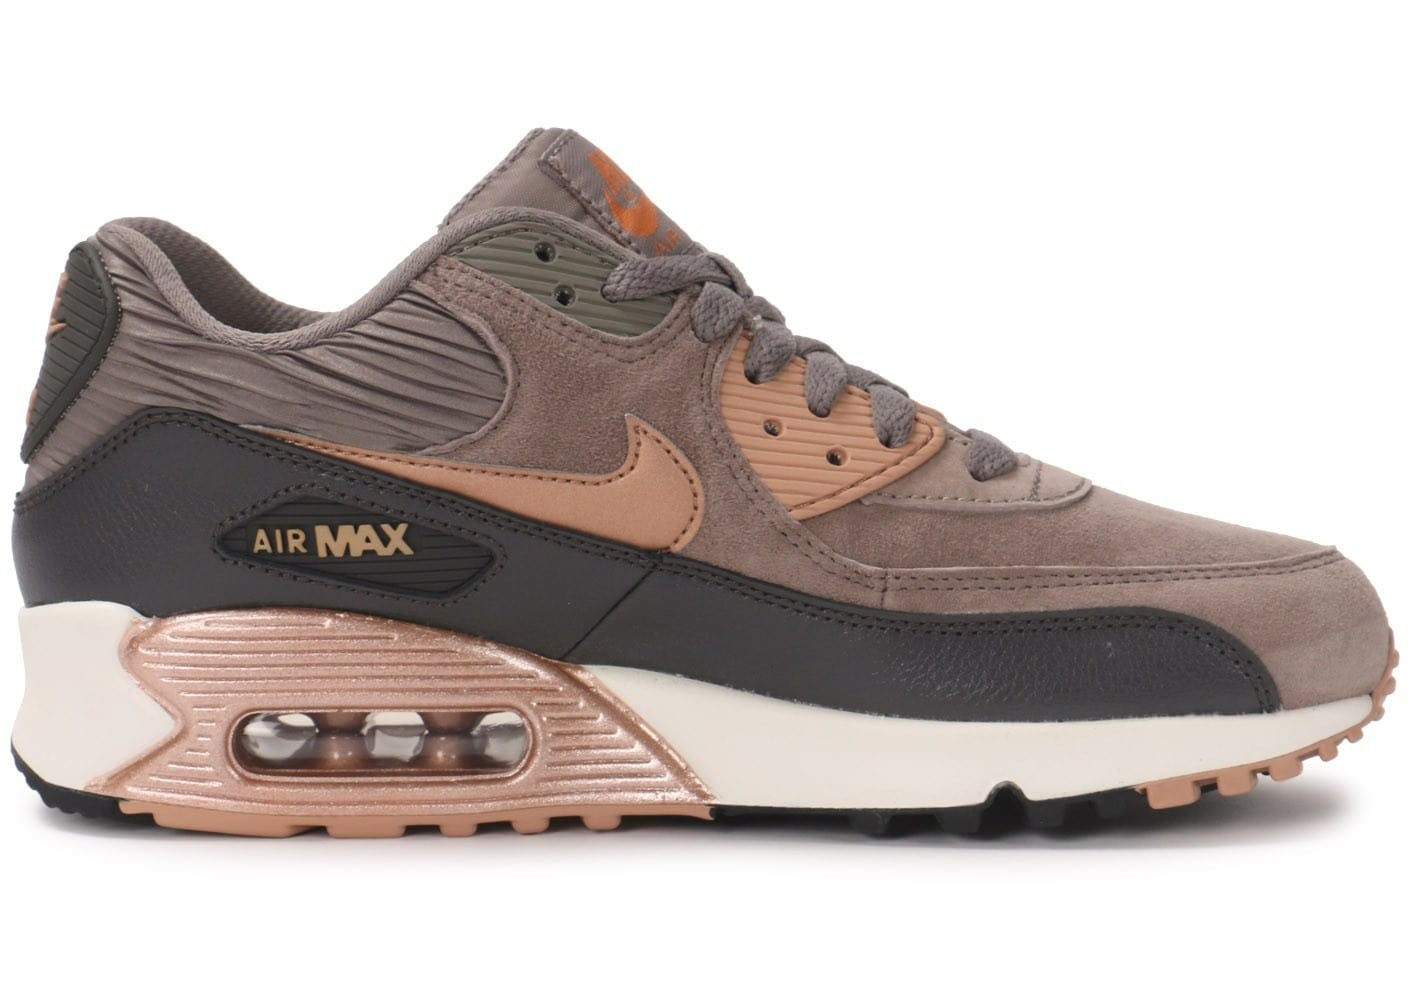 Nike Air Max 90 Metallic Red Bronze : où l'acheter ?